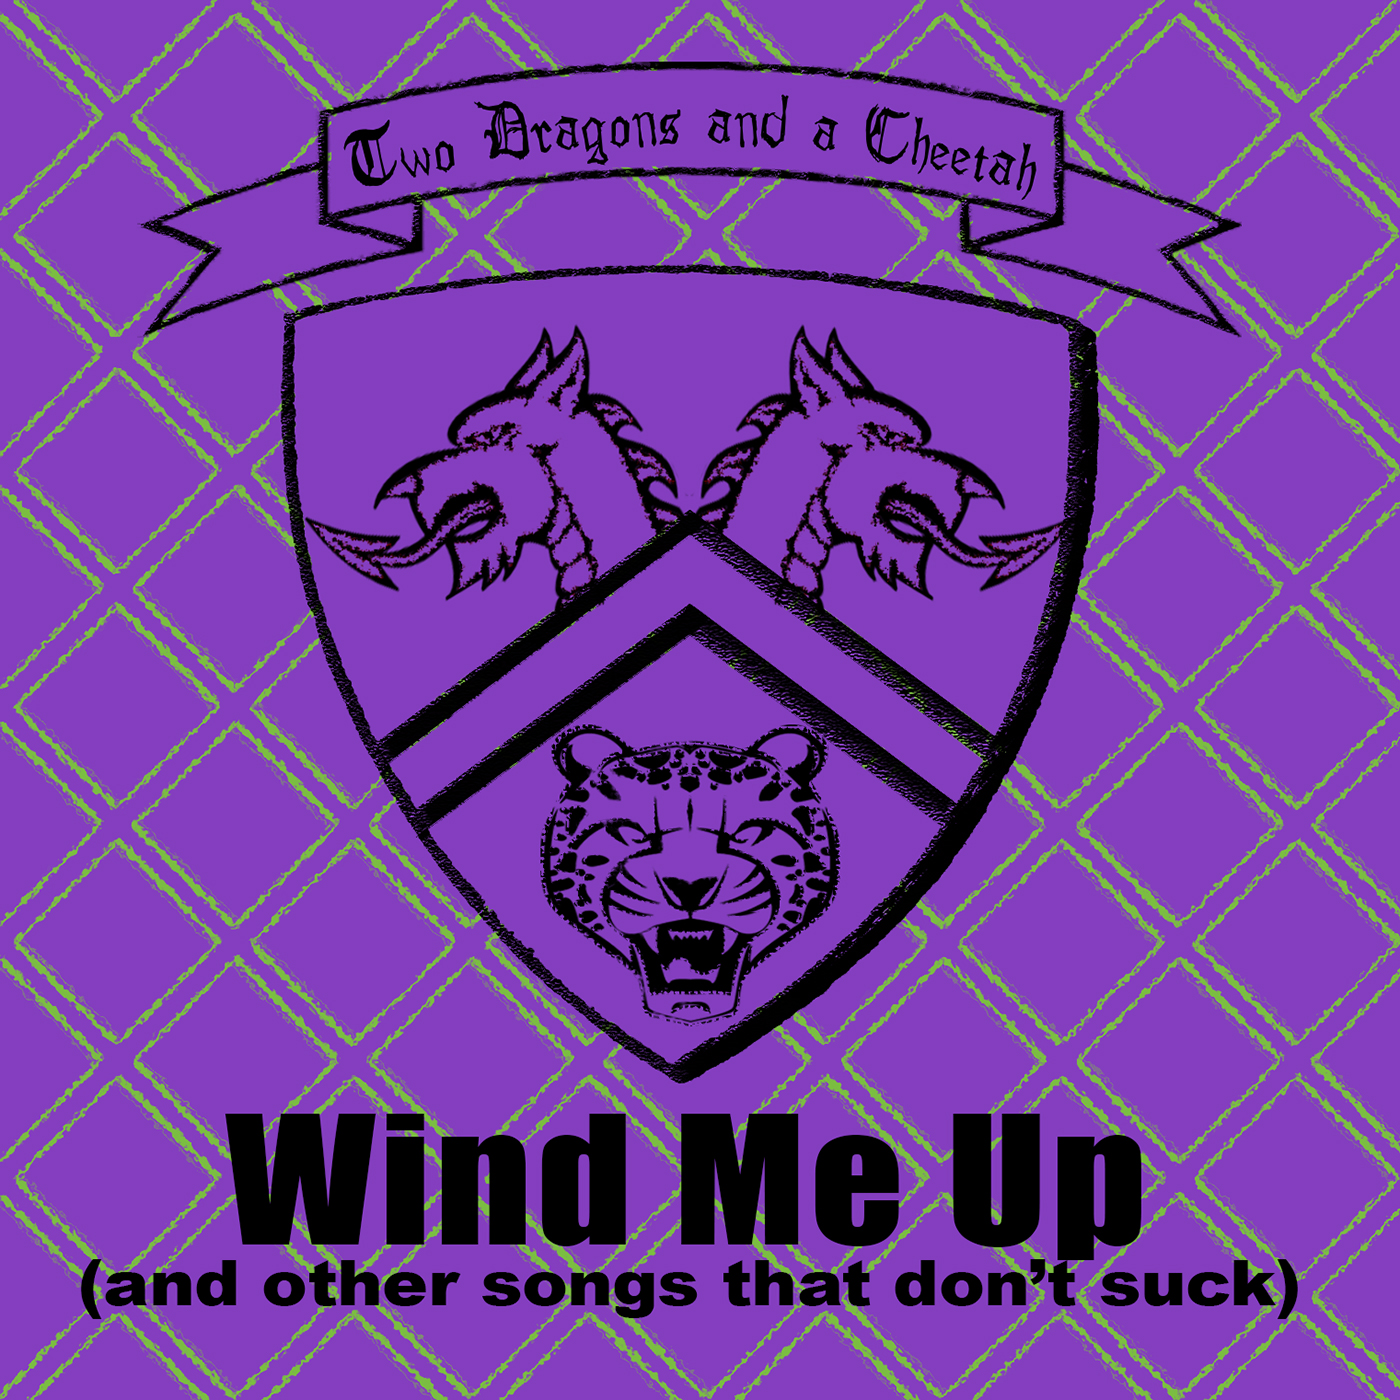 Wind Me Up (and other songs that don't suck)